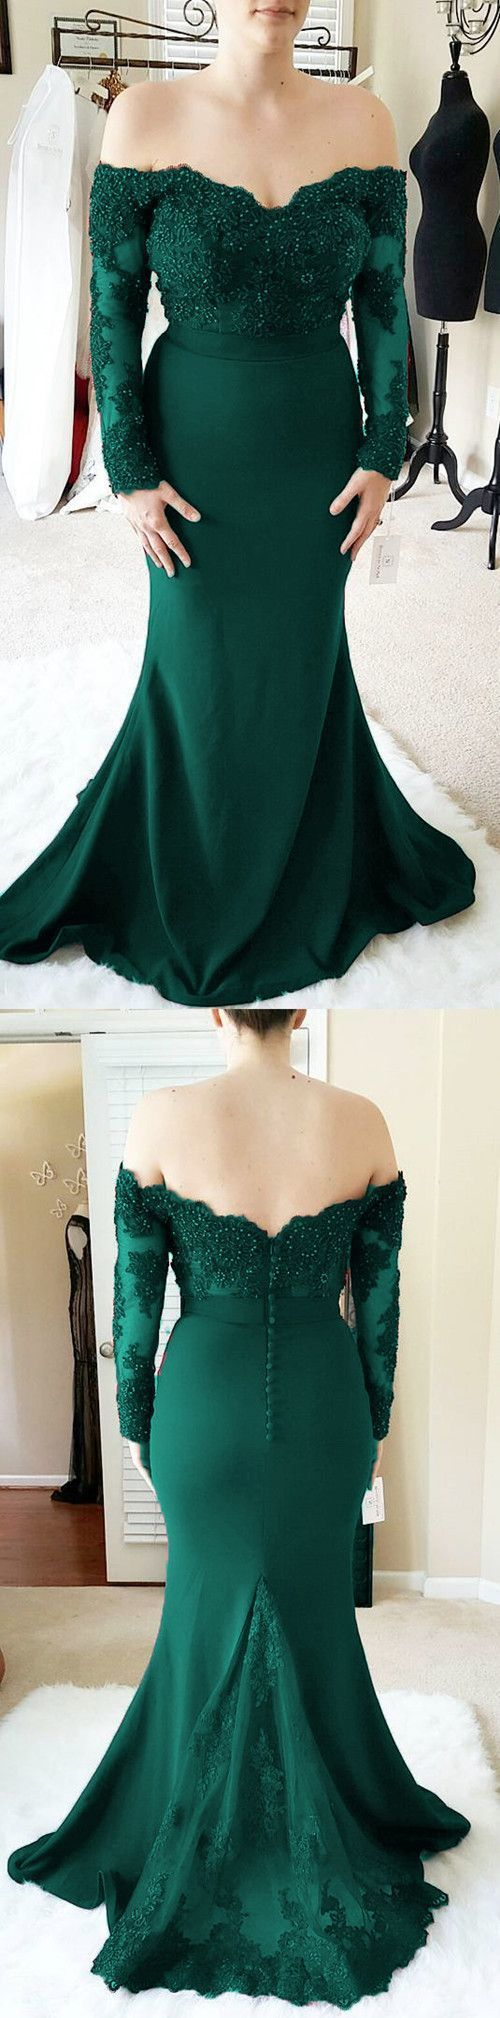 Elegant Mermaid Beads Appliques Prom Dress,  2019 Long Sleeve Formal Evening